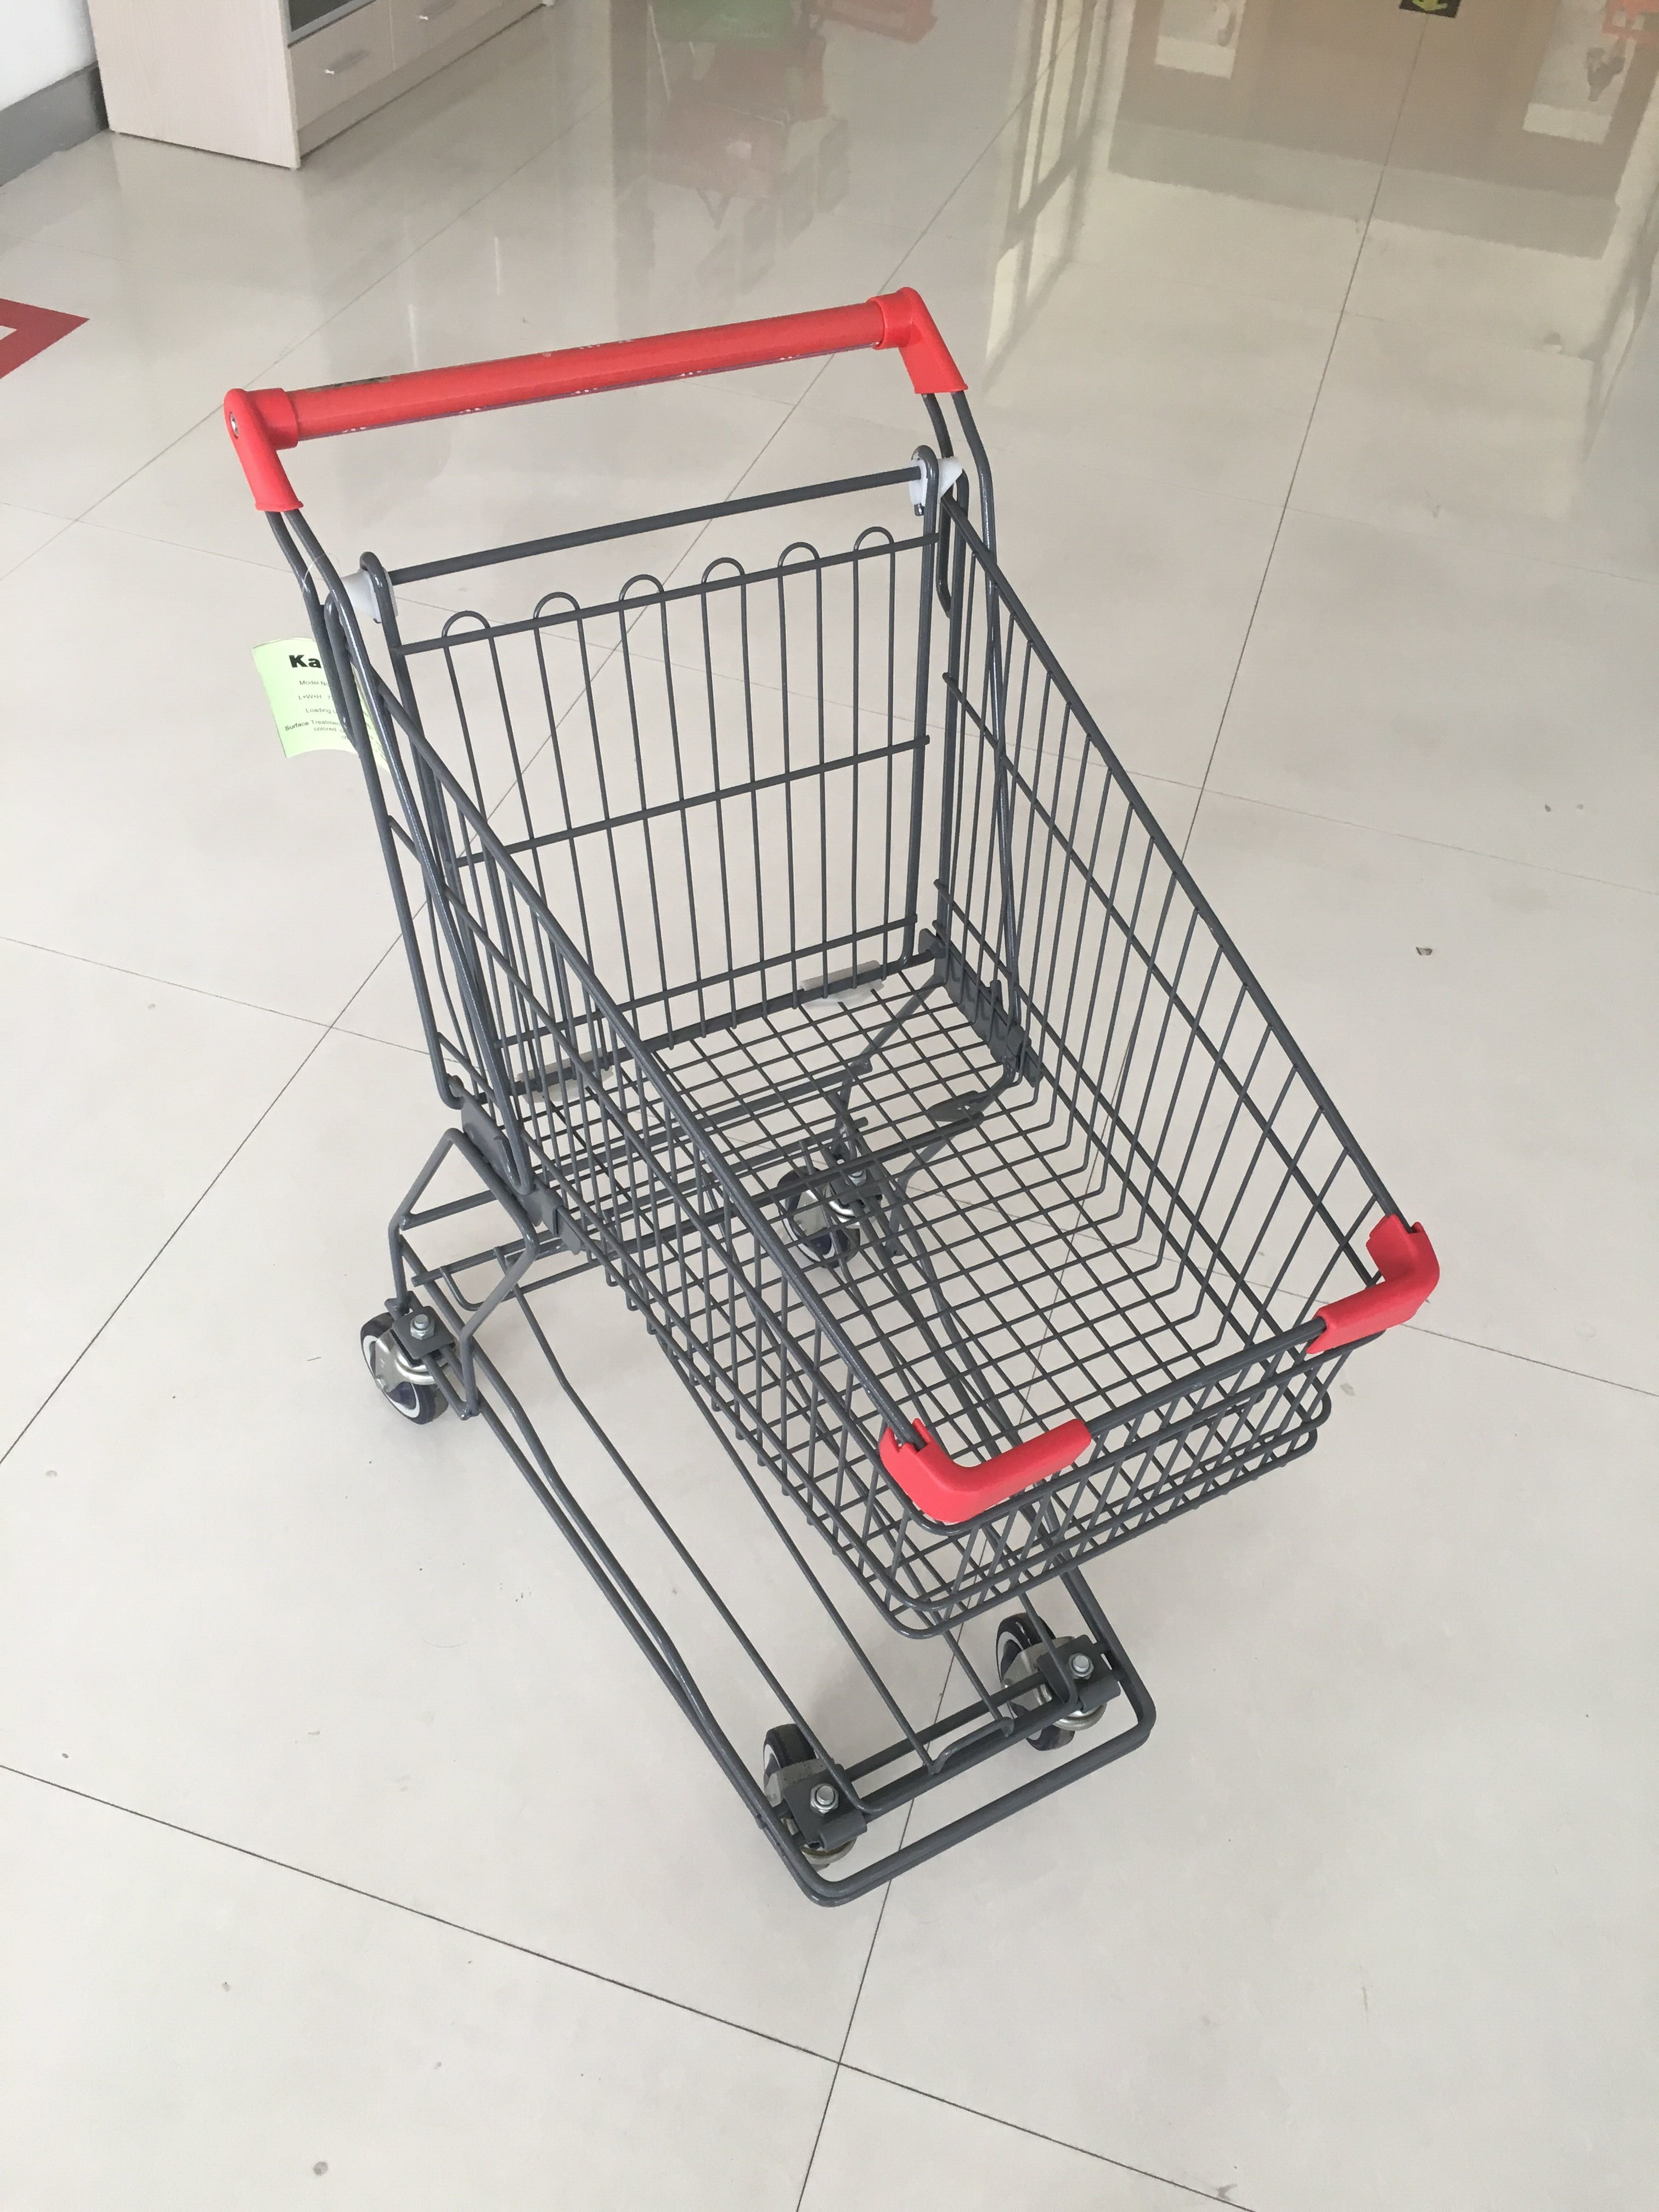 Base Grid 45L Wire Shopping Trolley Supermarket Shopping Cart Red Handle Bar